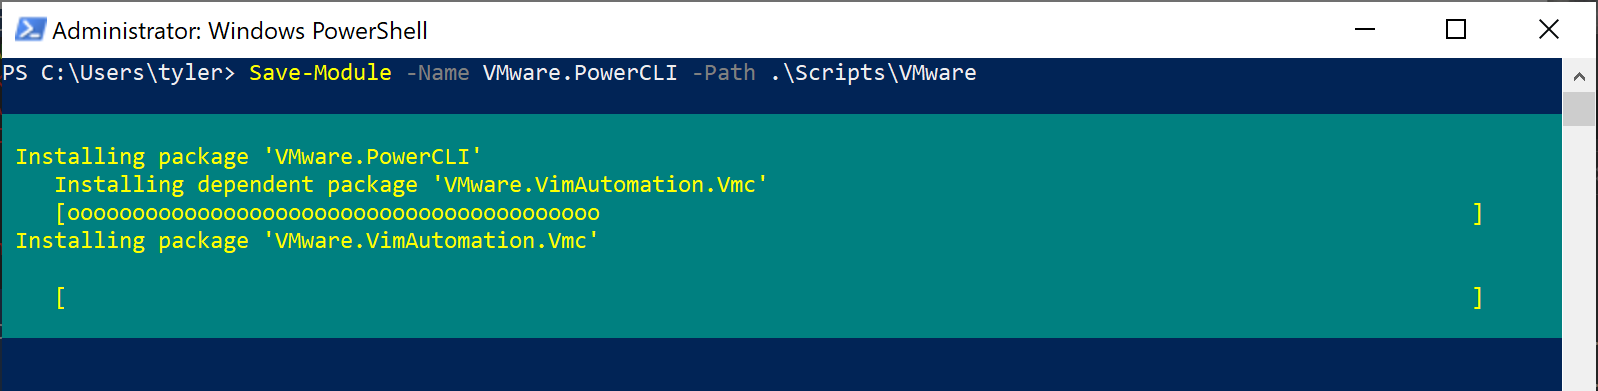 Downloading modules with Save-Module